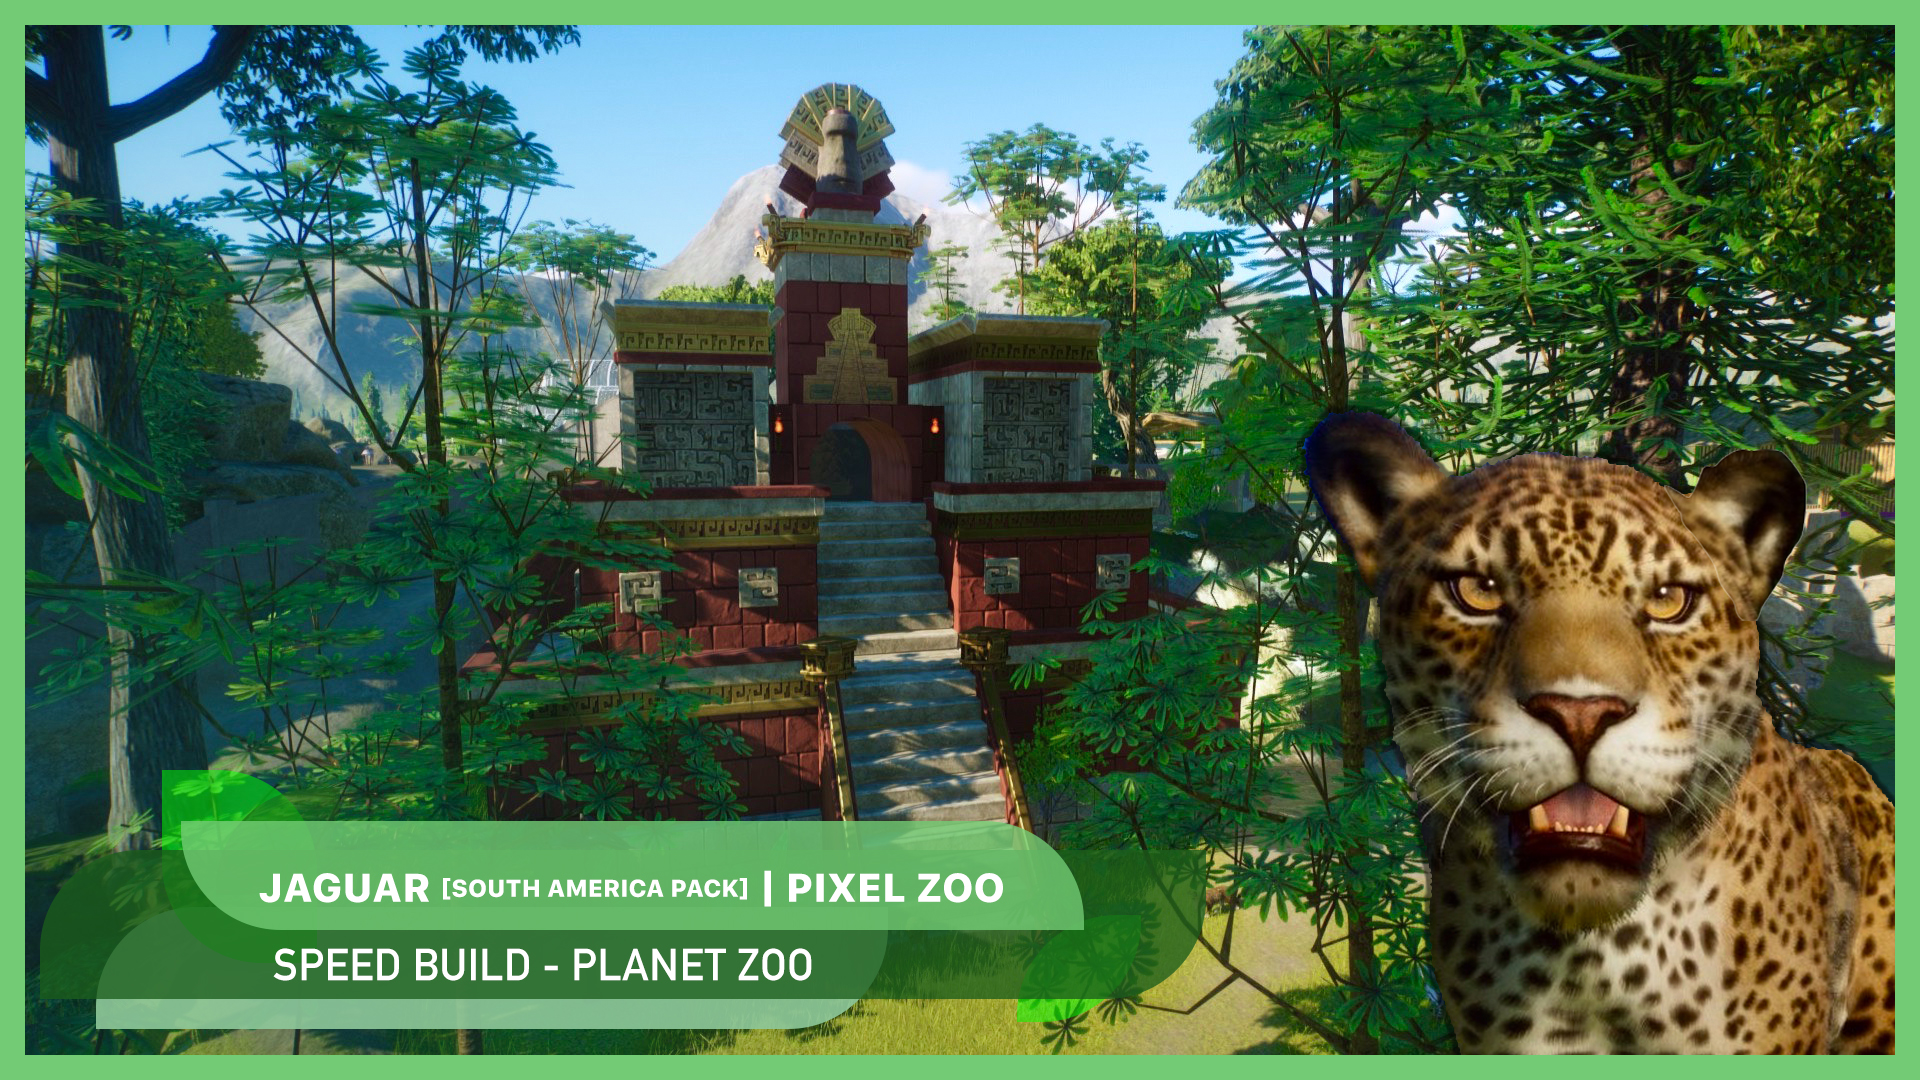 New video: Jaguar and Aztec temple 🐆🗿 | South America Pack